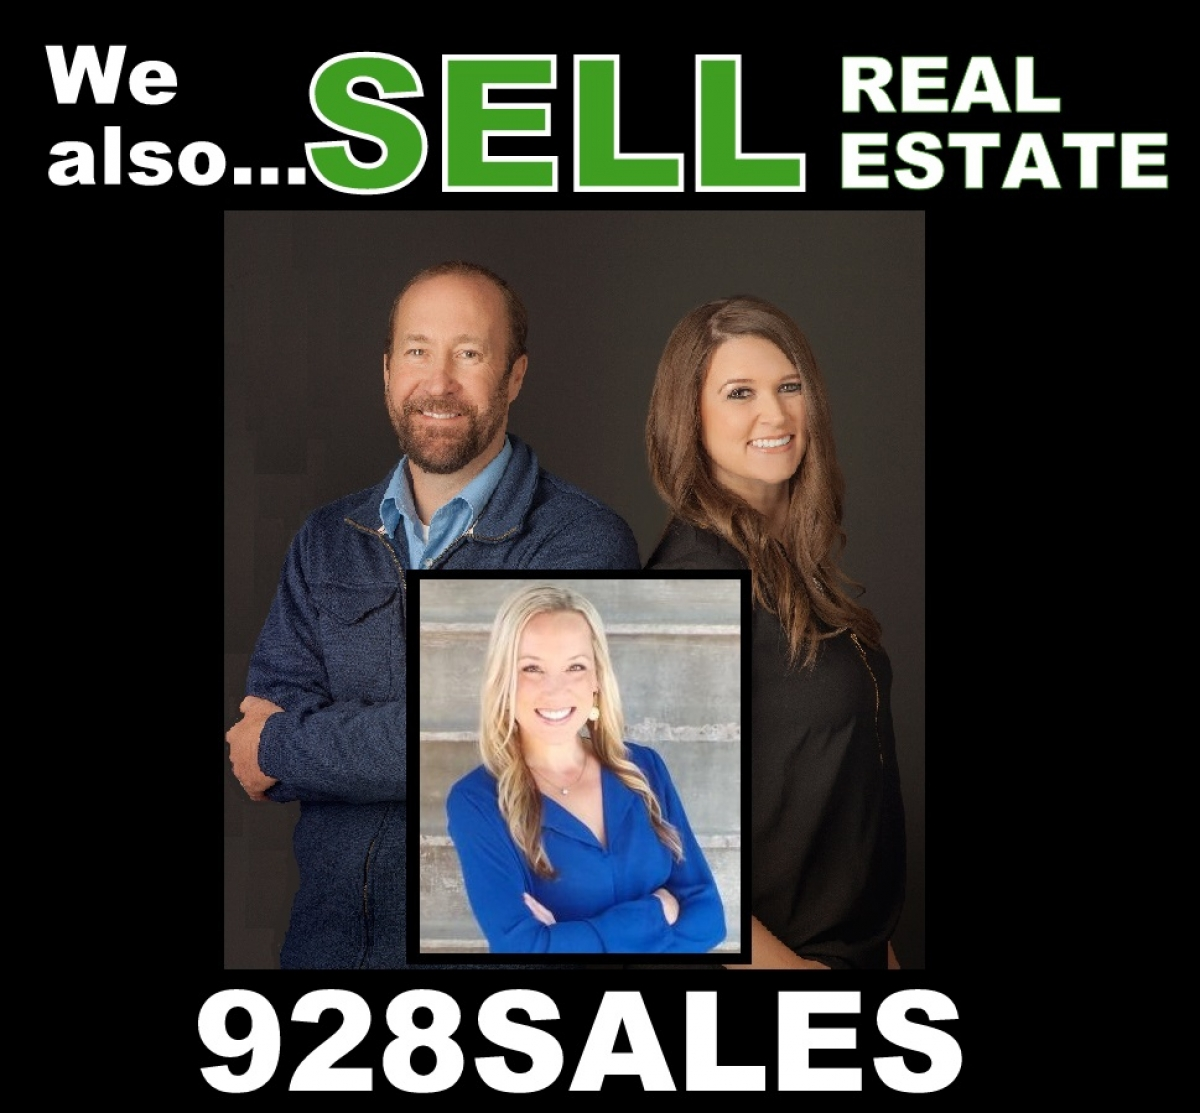 Image: We are REALTORS.